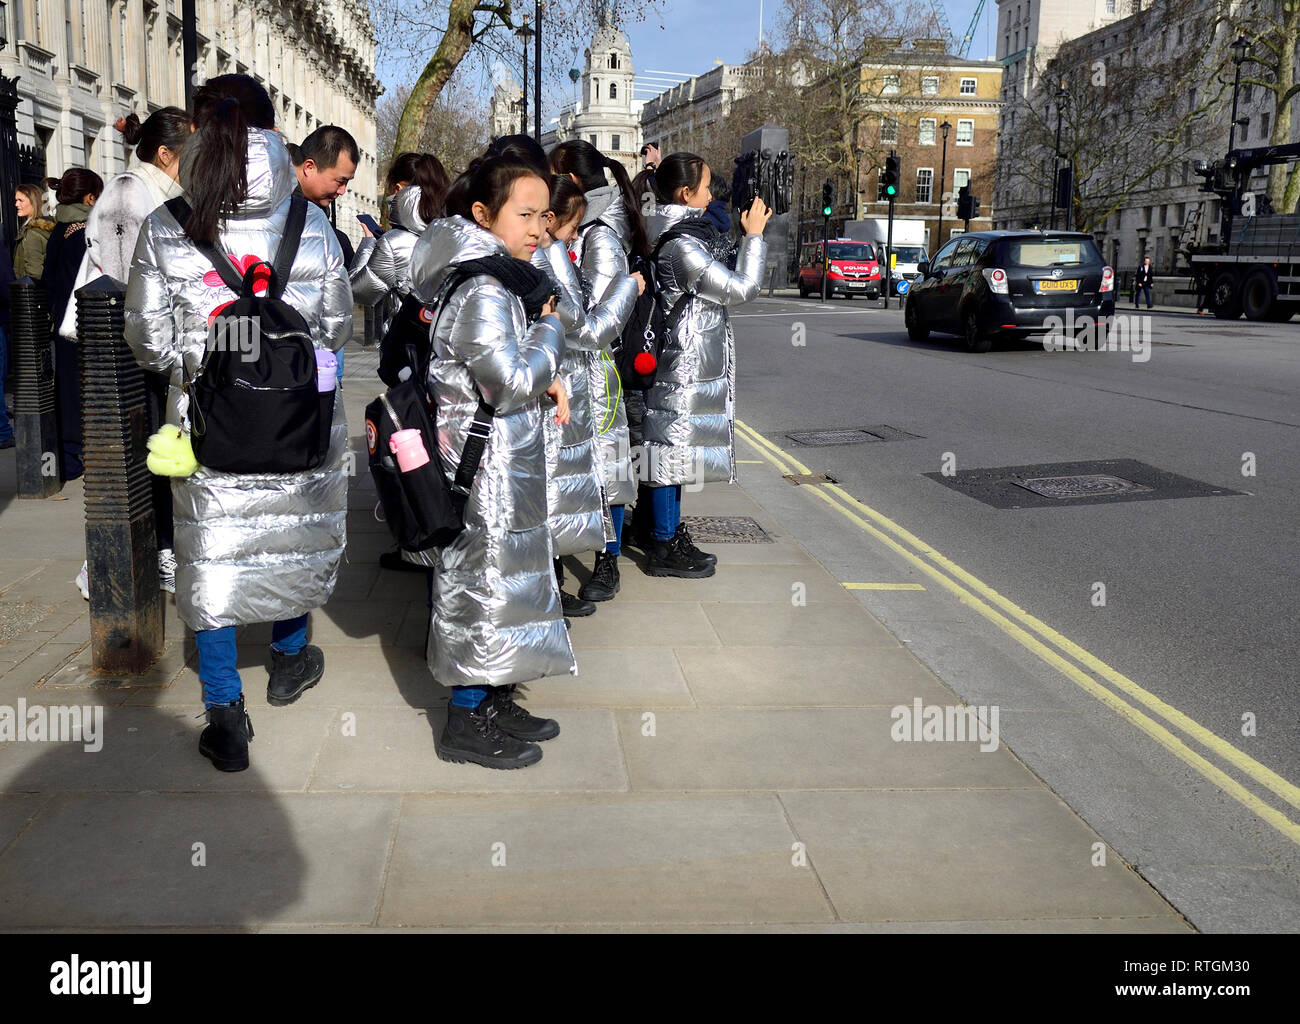 London, England, UK. Group of visiting Japanese schoolchildren in identical silver coats in Whitehall, outside Downing Street - Stock Image